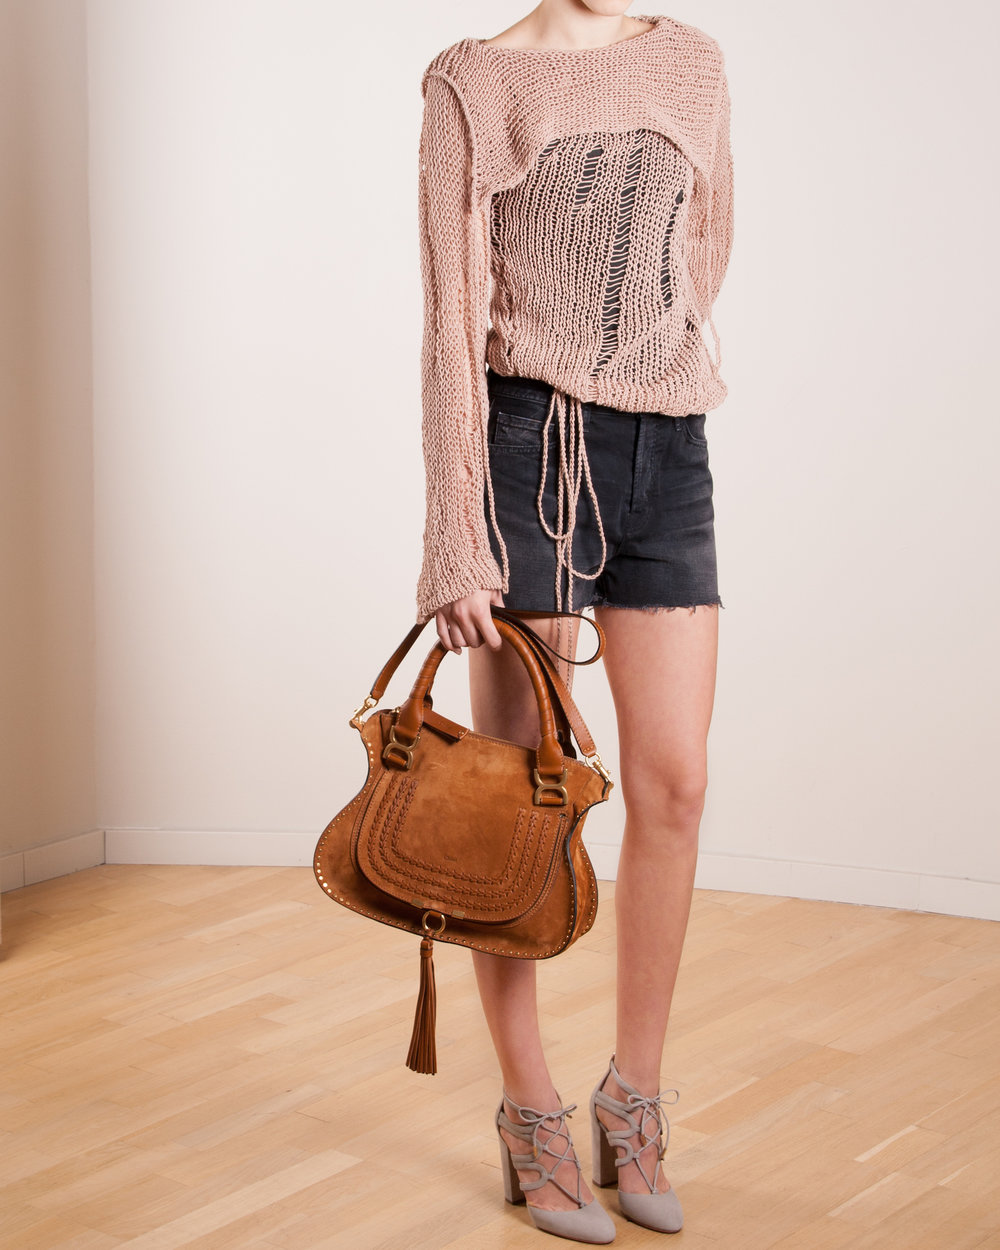 Knit: Philosophy   Denim shorts: J Brand  Bag: Chloé Marcie   Shoes: Aquazzura Holli